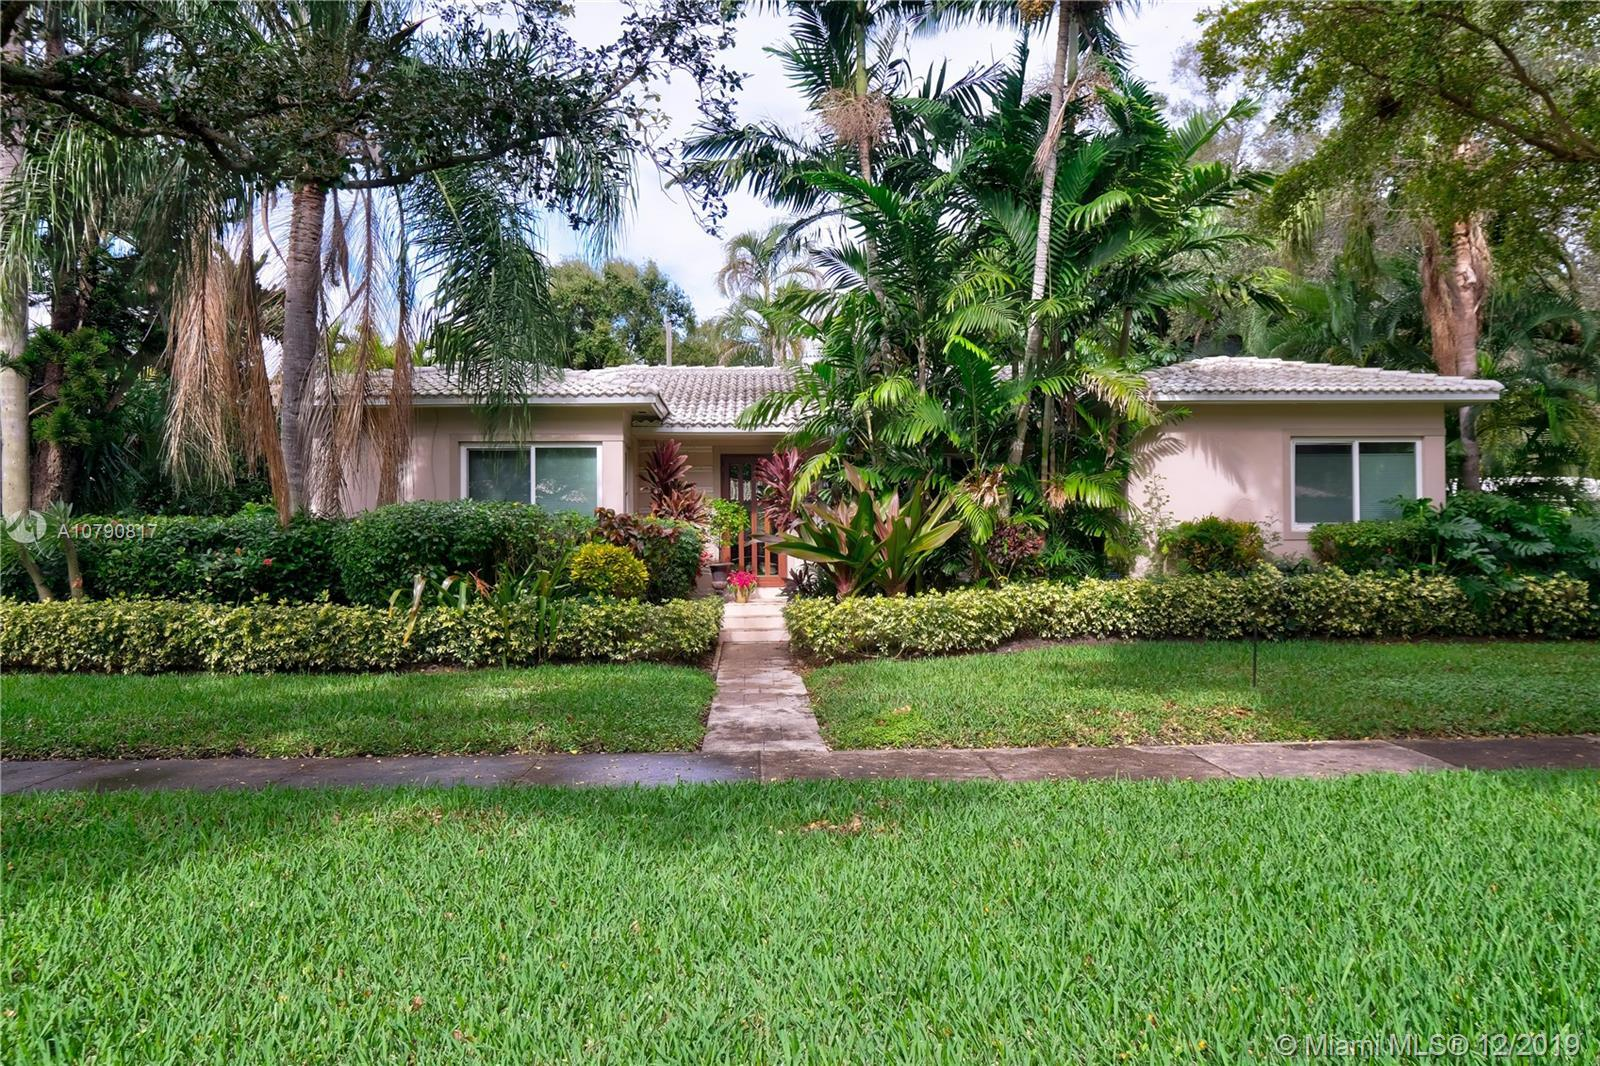 MIAMI SHORES GEM LOCATED ON QUIET CORNER LOT. MANY RECENT UPDATES INCLUDE NEW TILE ROOF AND NEW IMPA